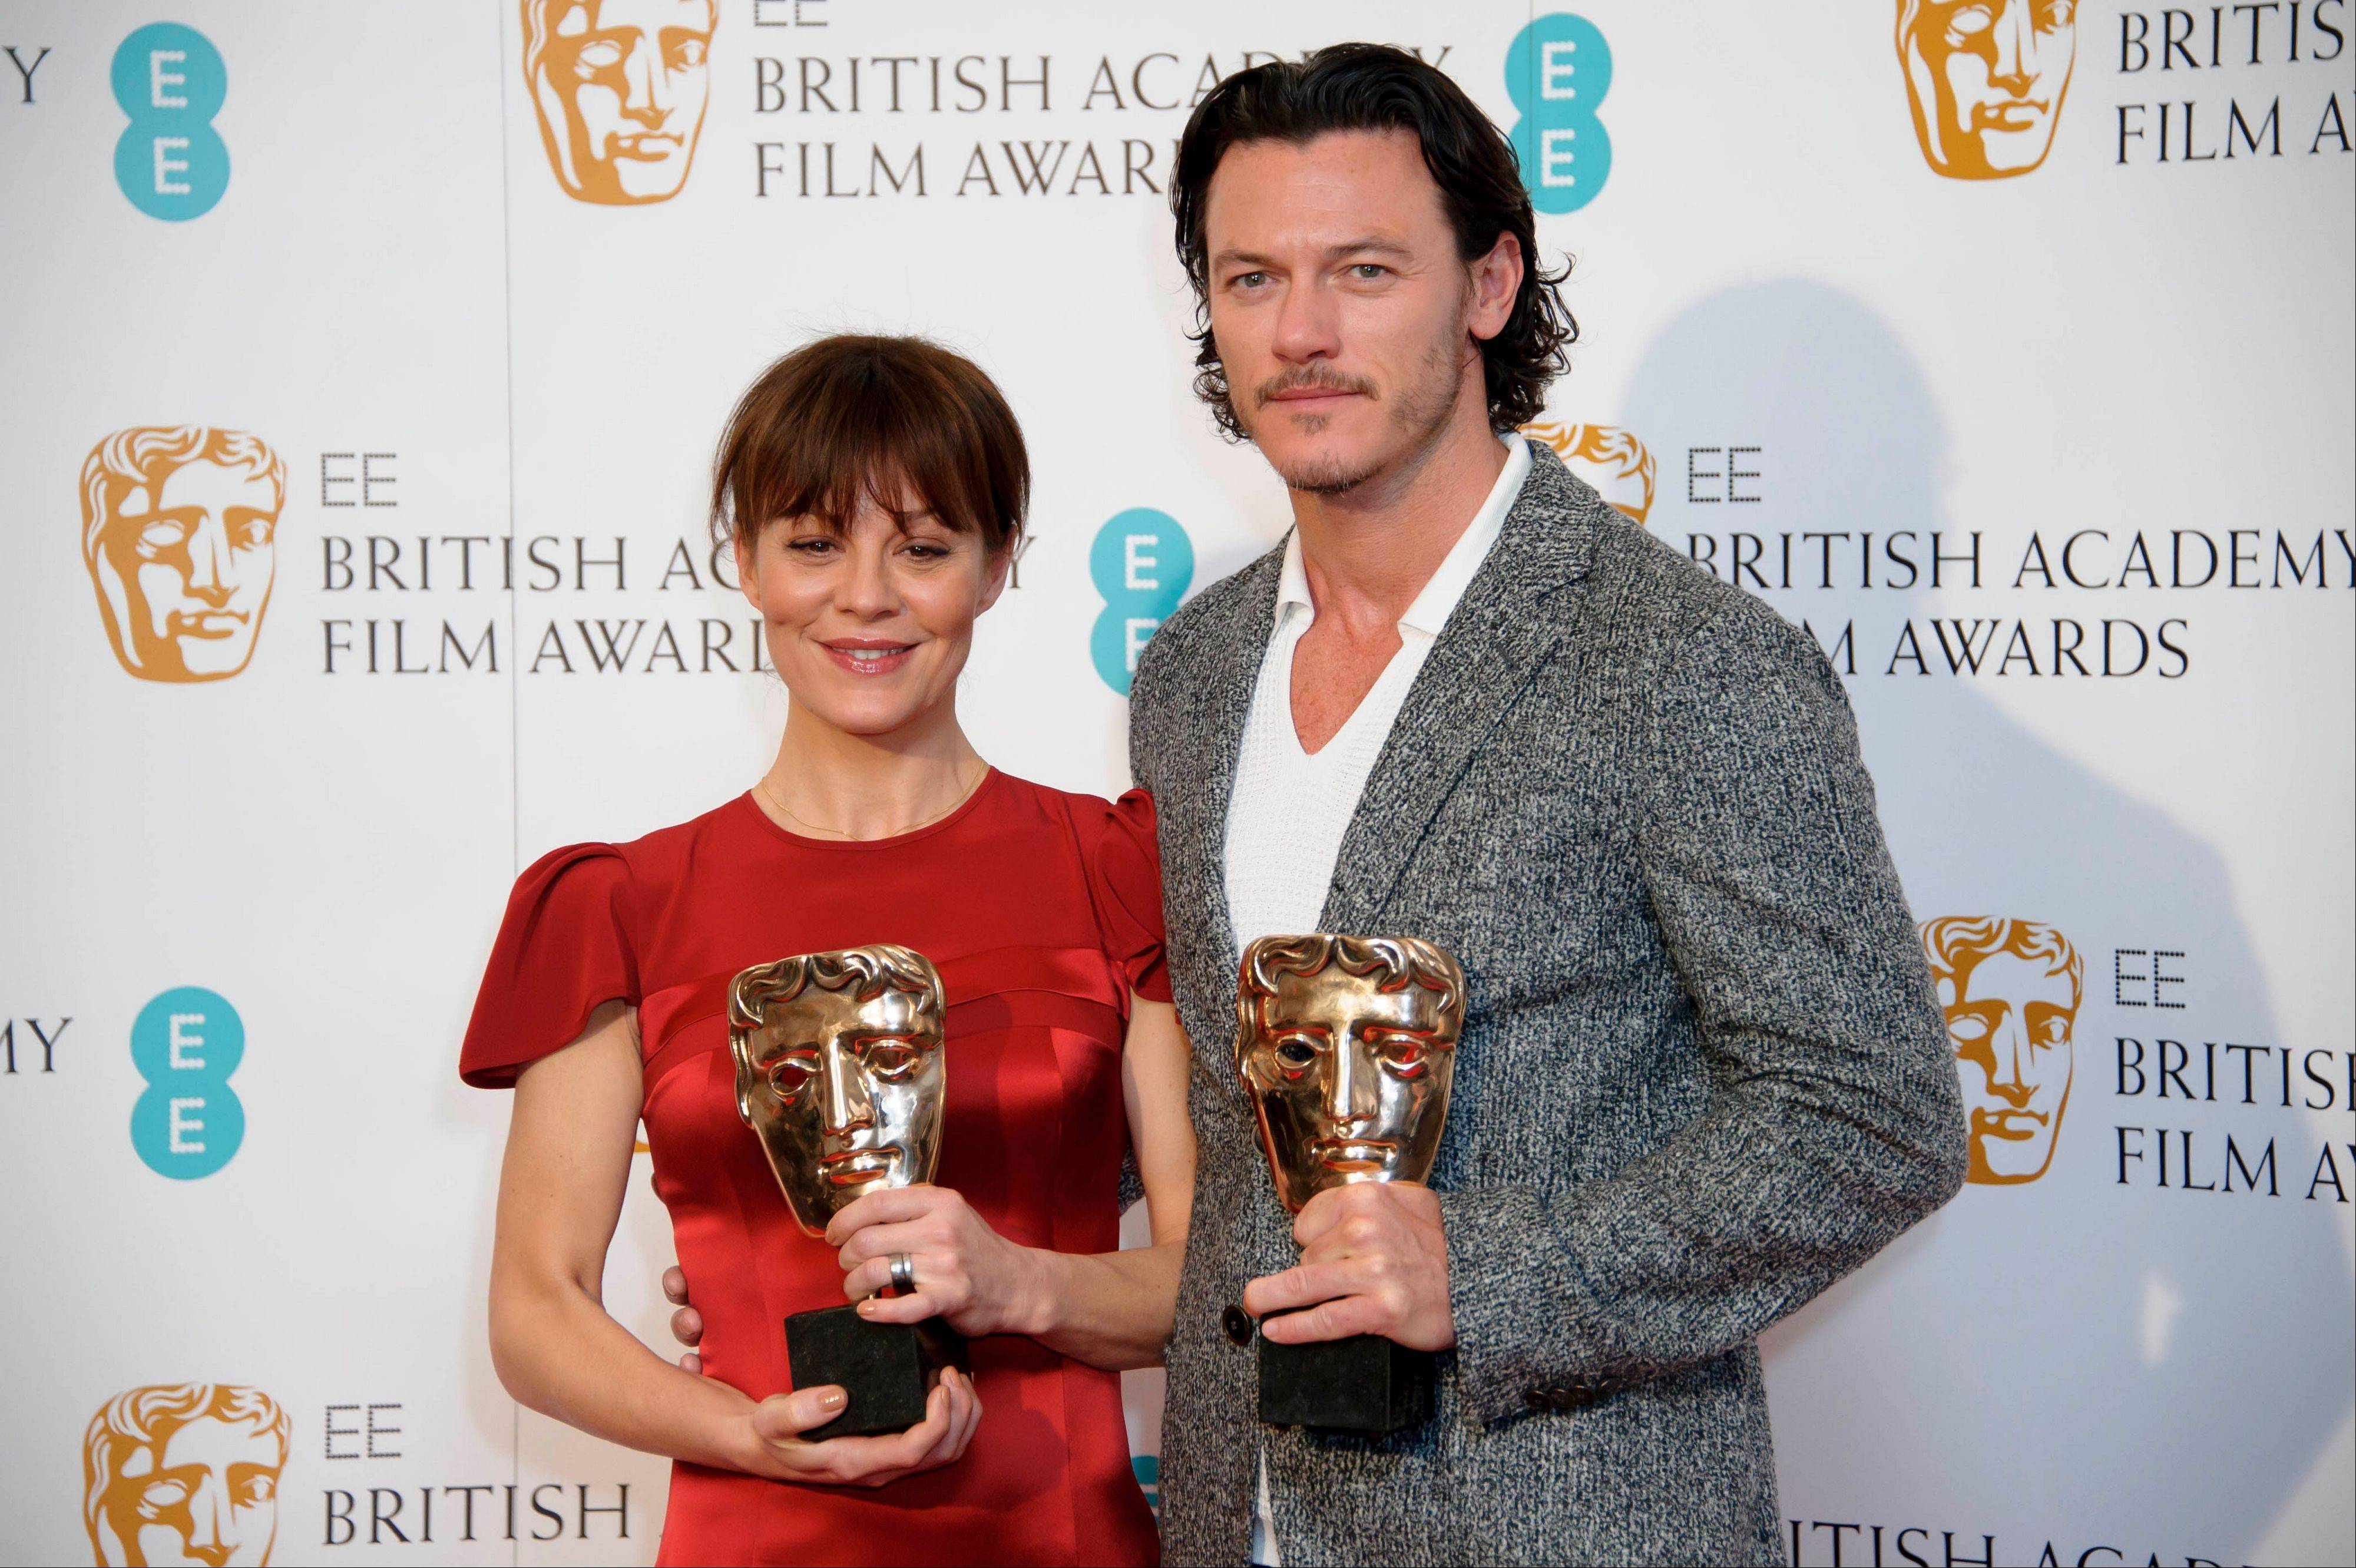 British actors Helen McCrory and Luke Evans announced Wednesday that �Gravity,� �12 Years a Slave,� �American Hustle,� �Captain Phillips� and �Philomena� are best picture nominees for the British Academy Film Awards, Britain�s equivalent of the Oscars.